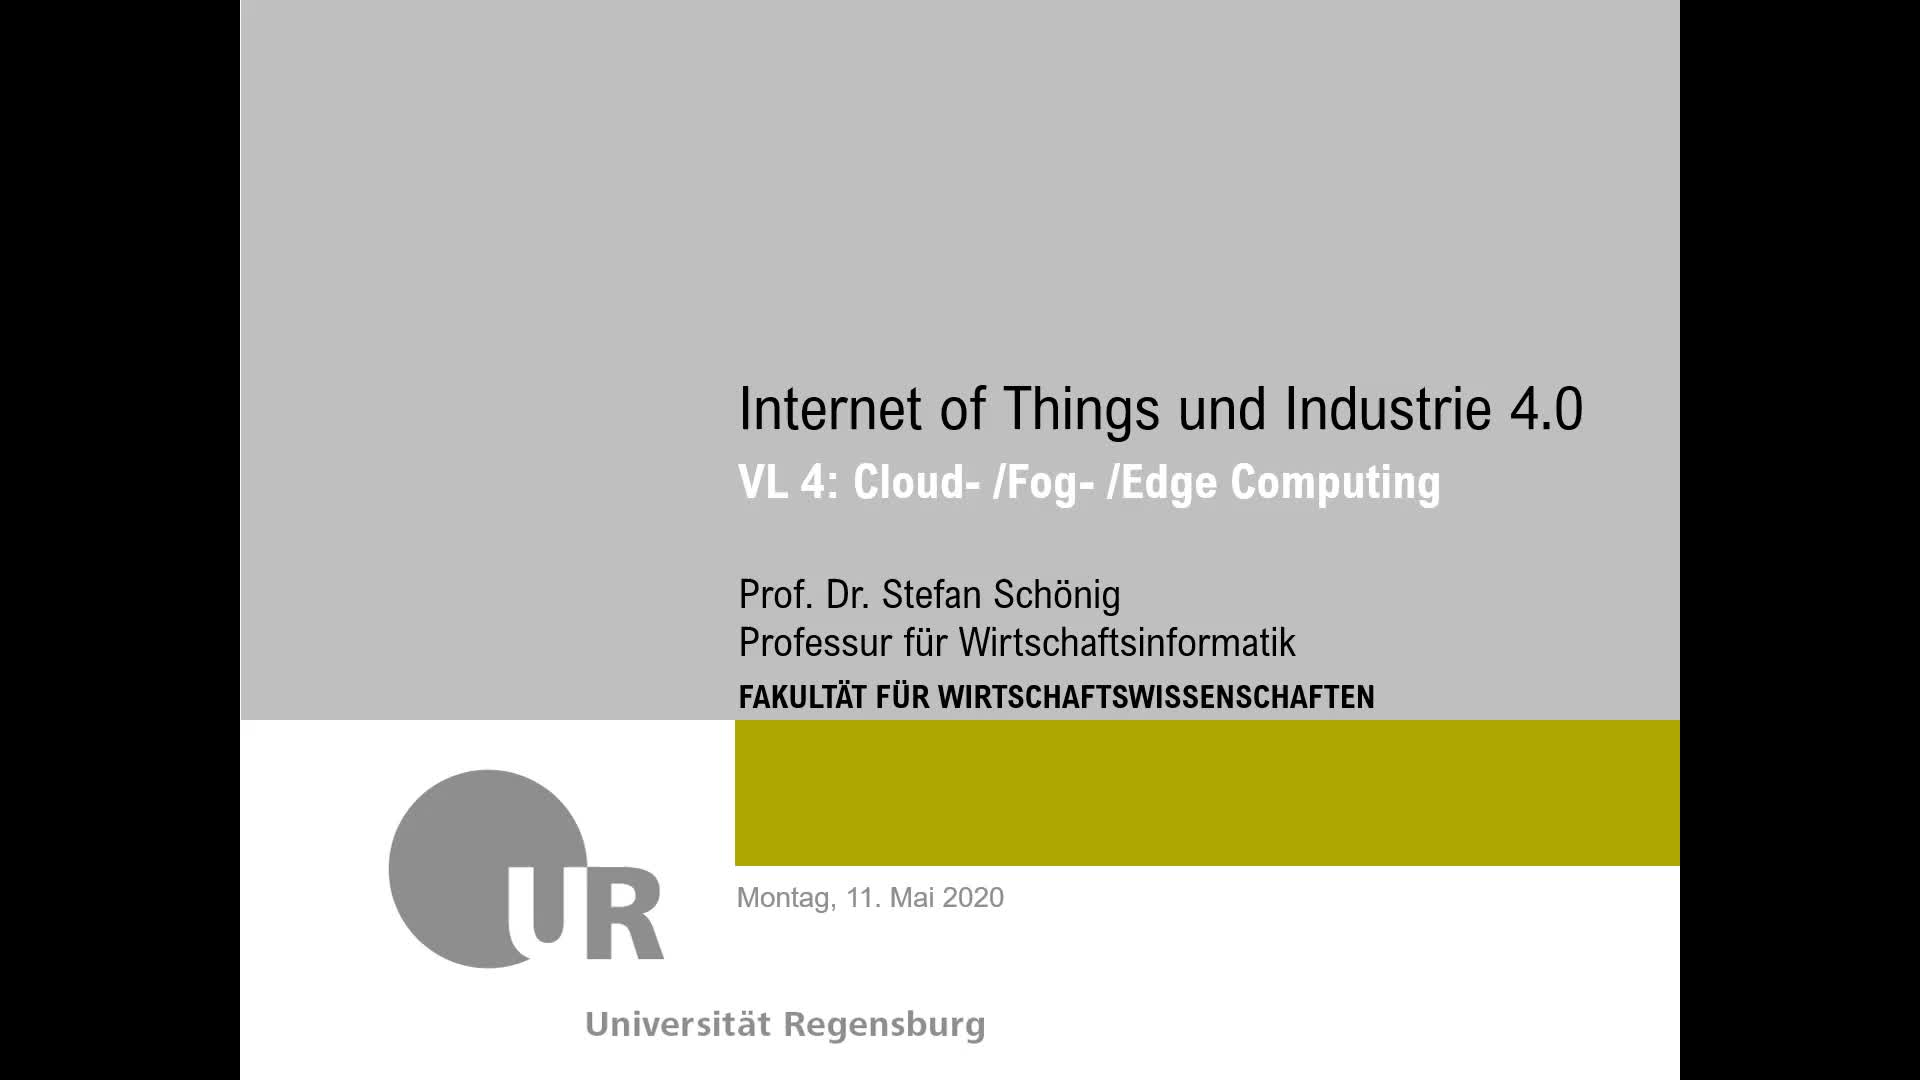 SS 2020 - Internet of Things und Industrie 4.0 - Kapitel 4 (Infrastrukturen - IoT Plattformen)